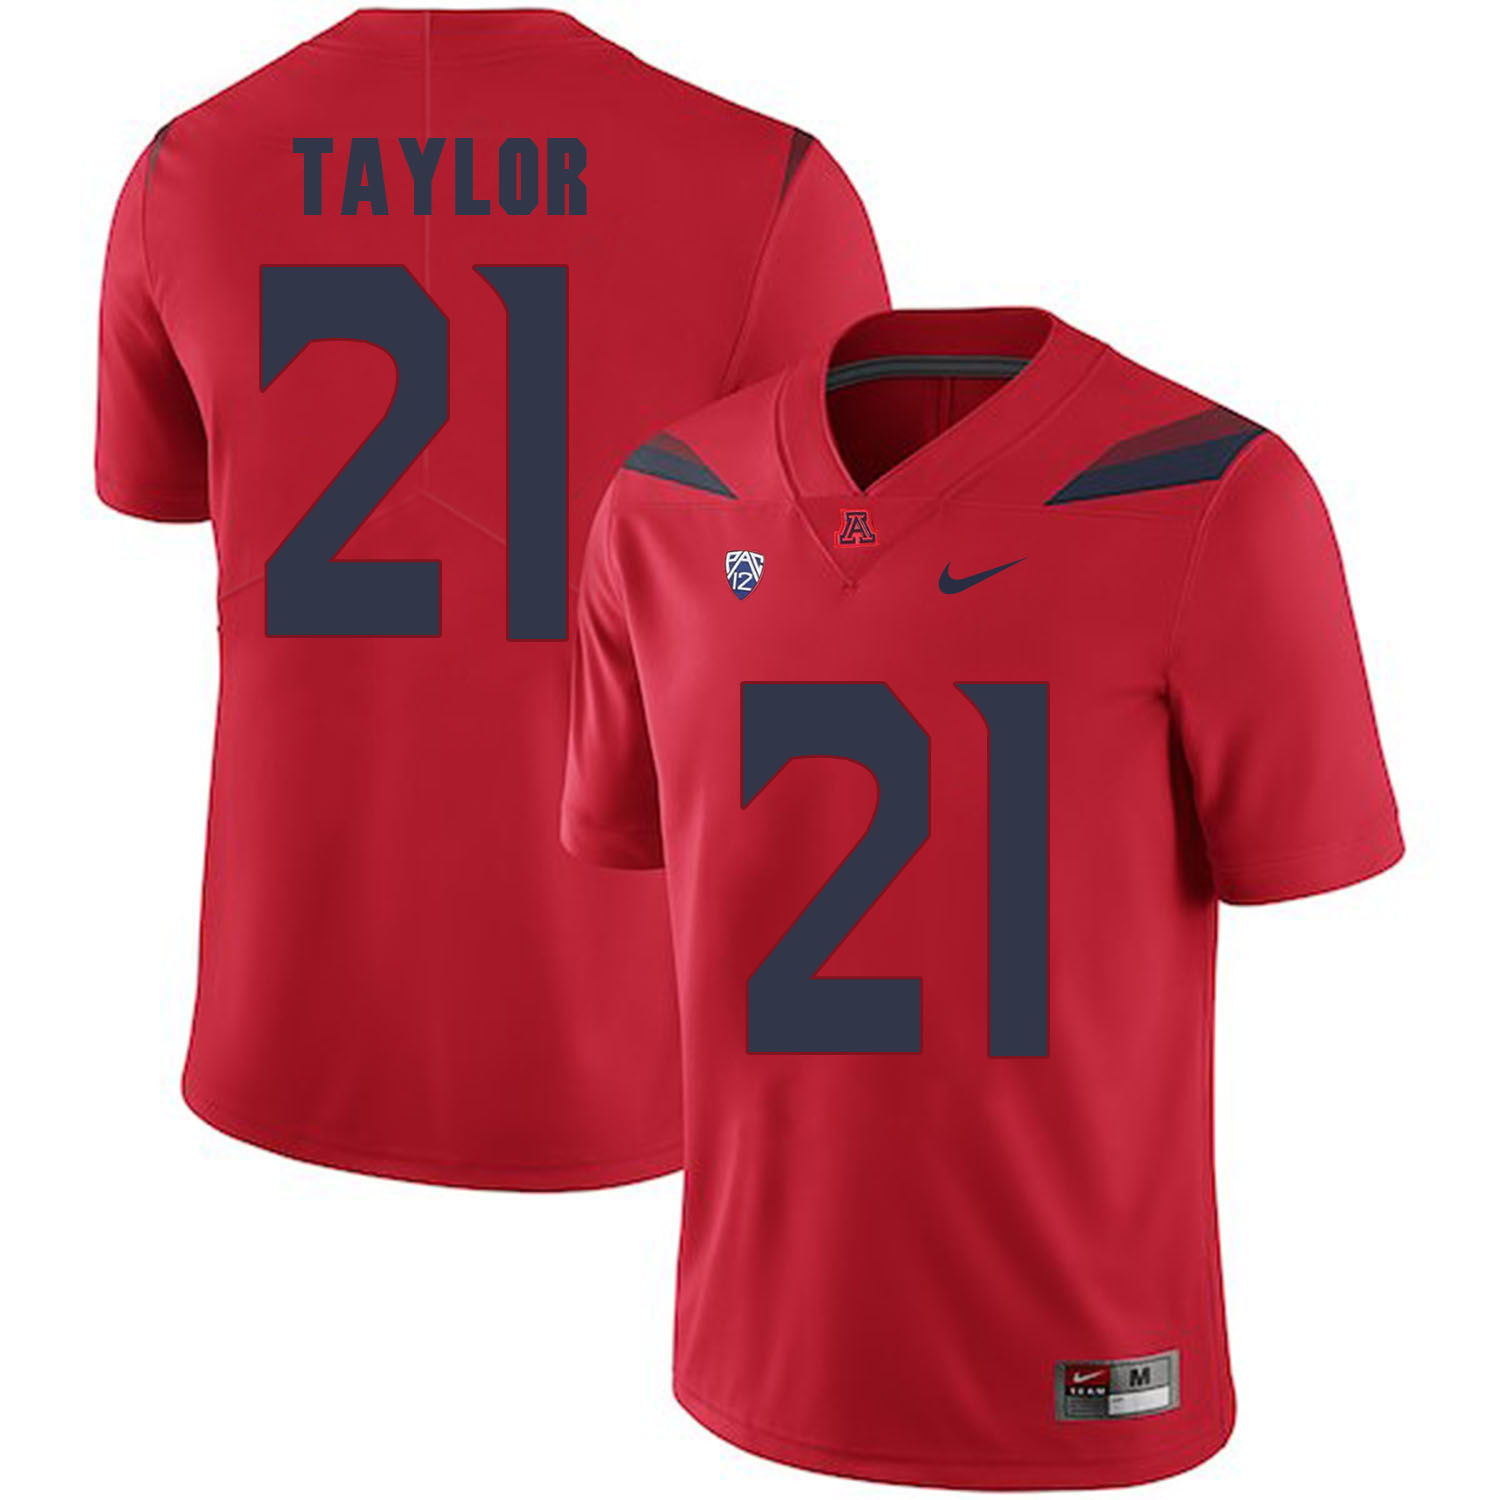 Arizona Wildcats 21 J.J. Taylor Red College Football Jersey